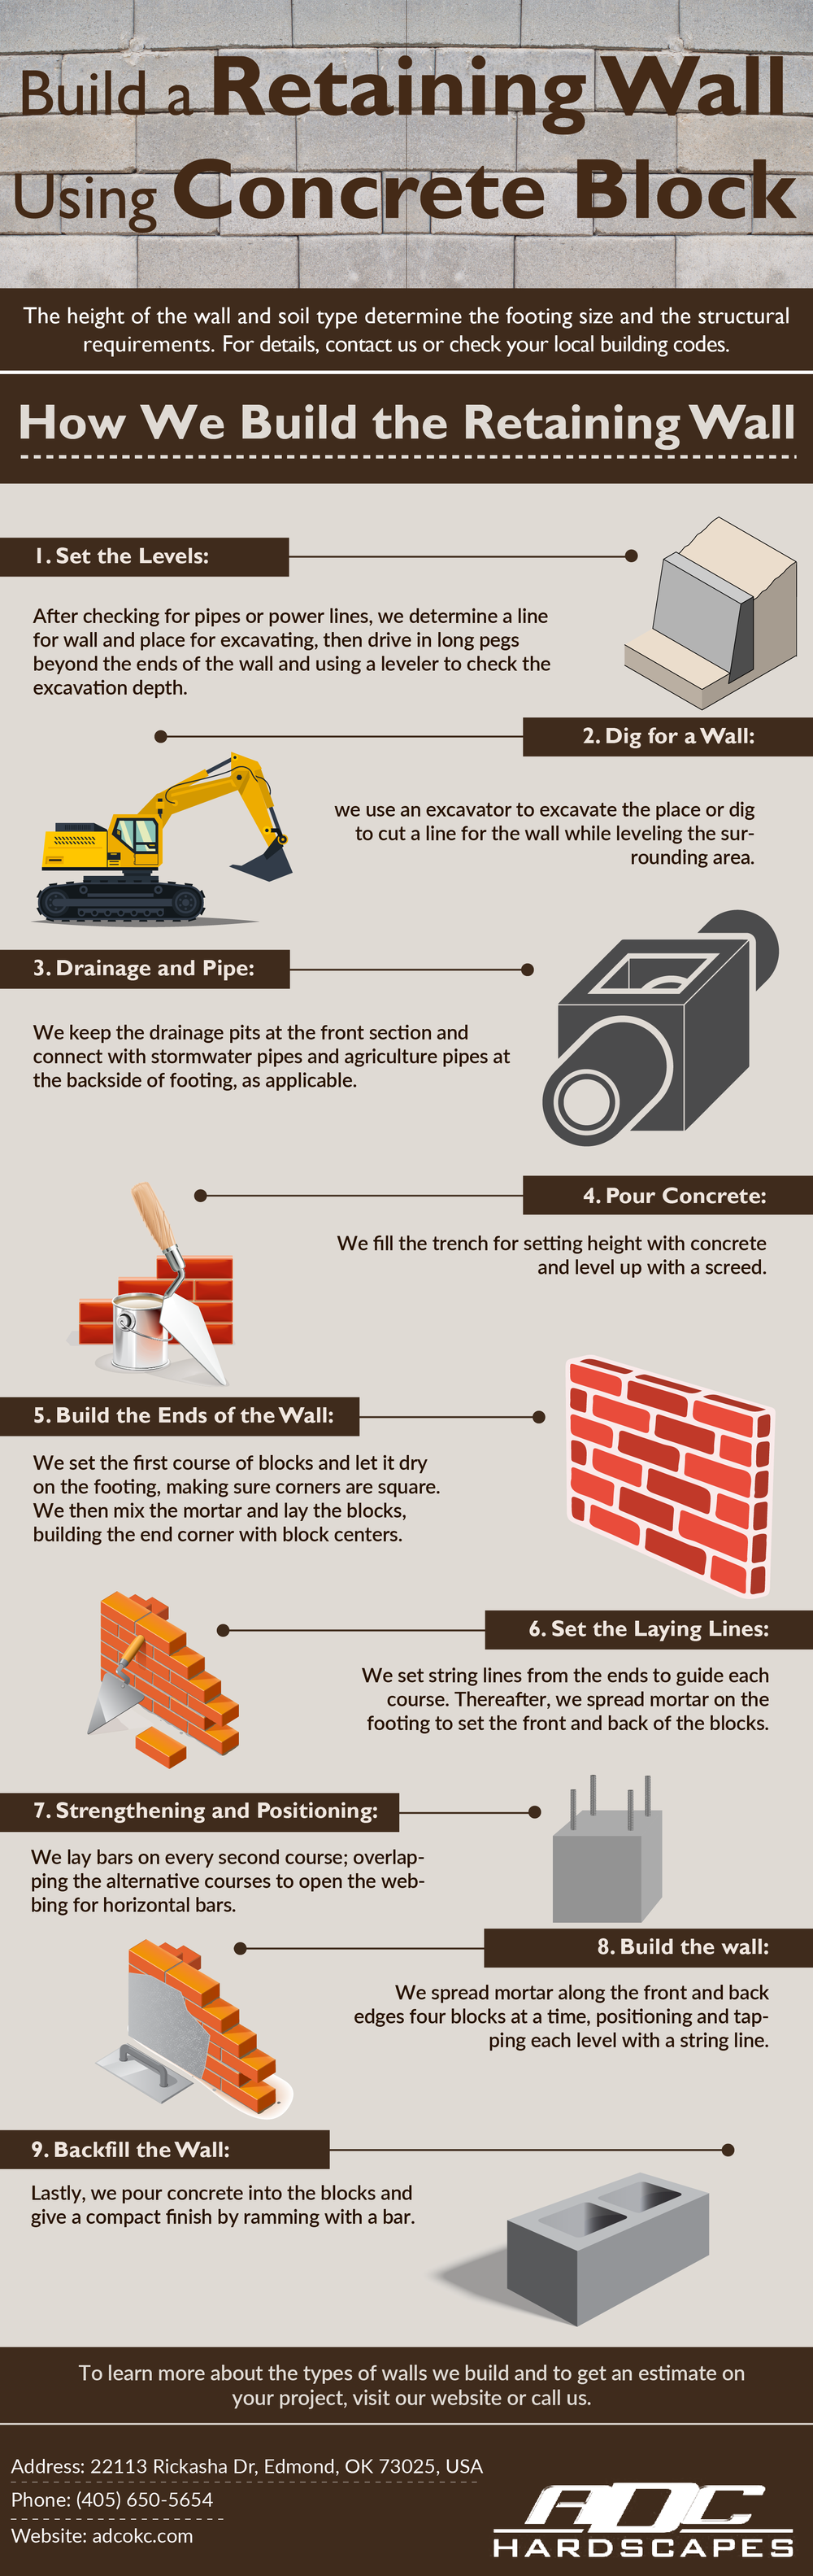 Build a Retaining Wall Using Concrete Block.png